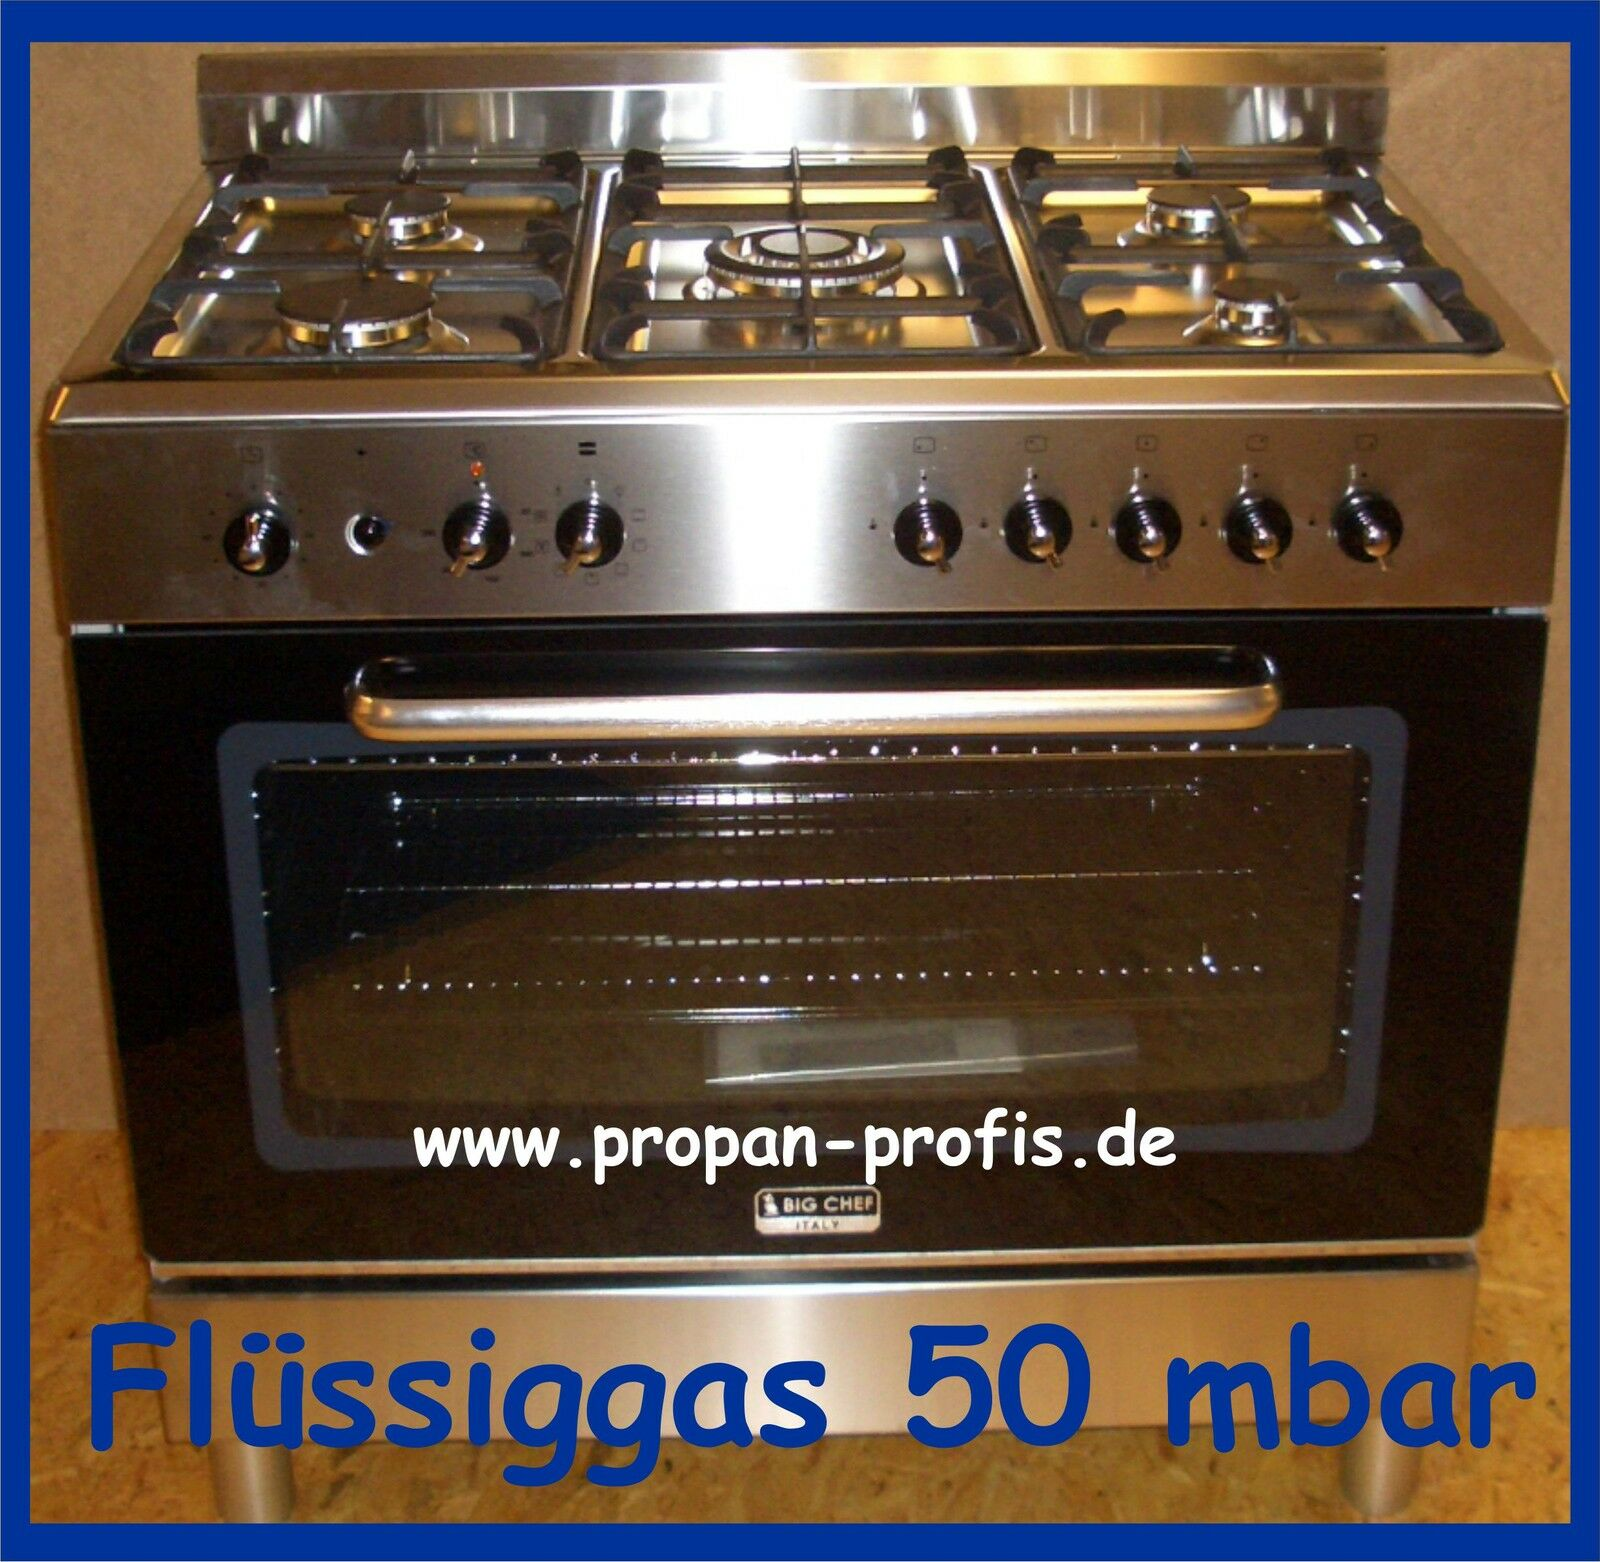 gasherd big chef propangas 5 flammig 90 cm mit elektro. Black Bedroom Furniture Sets. Home Design Ideas